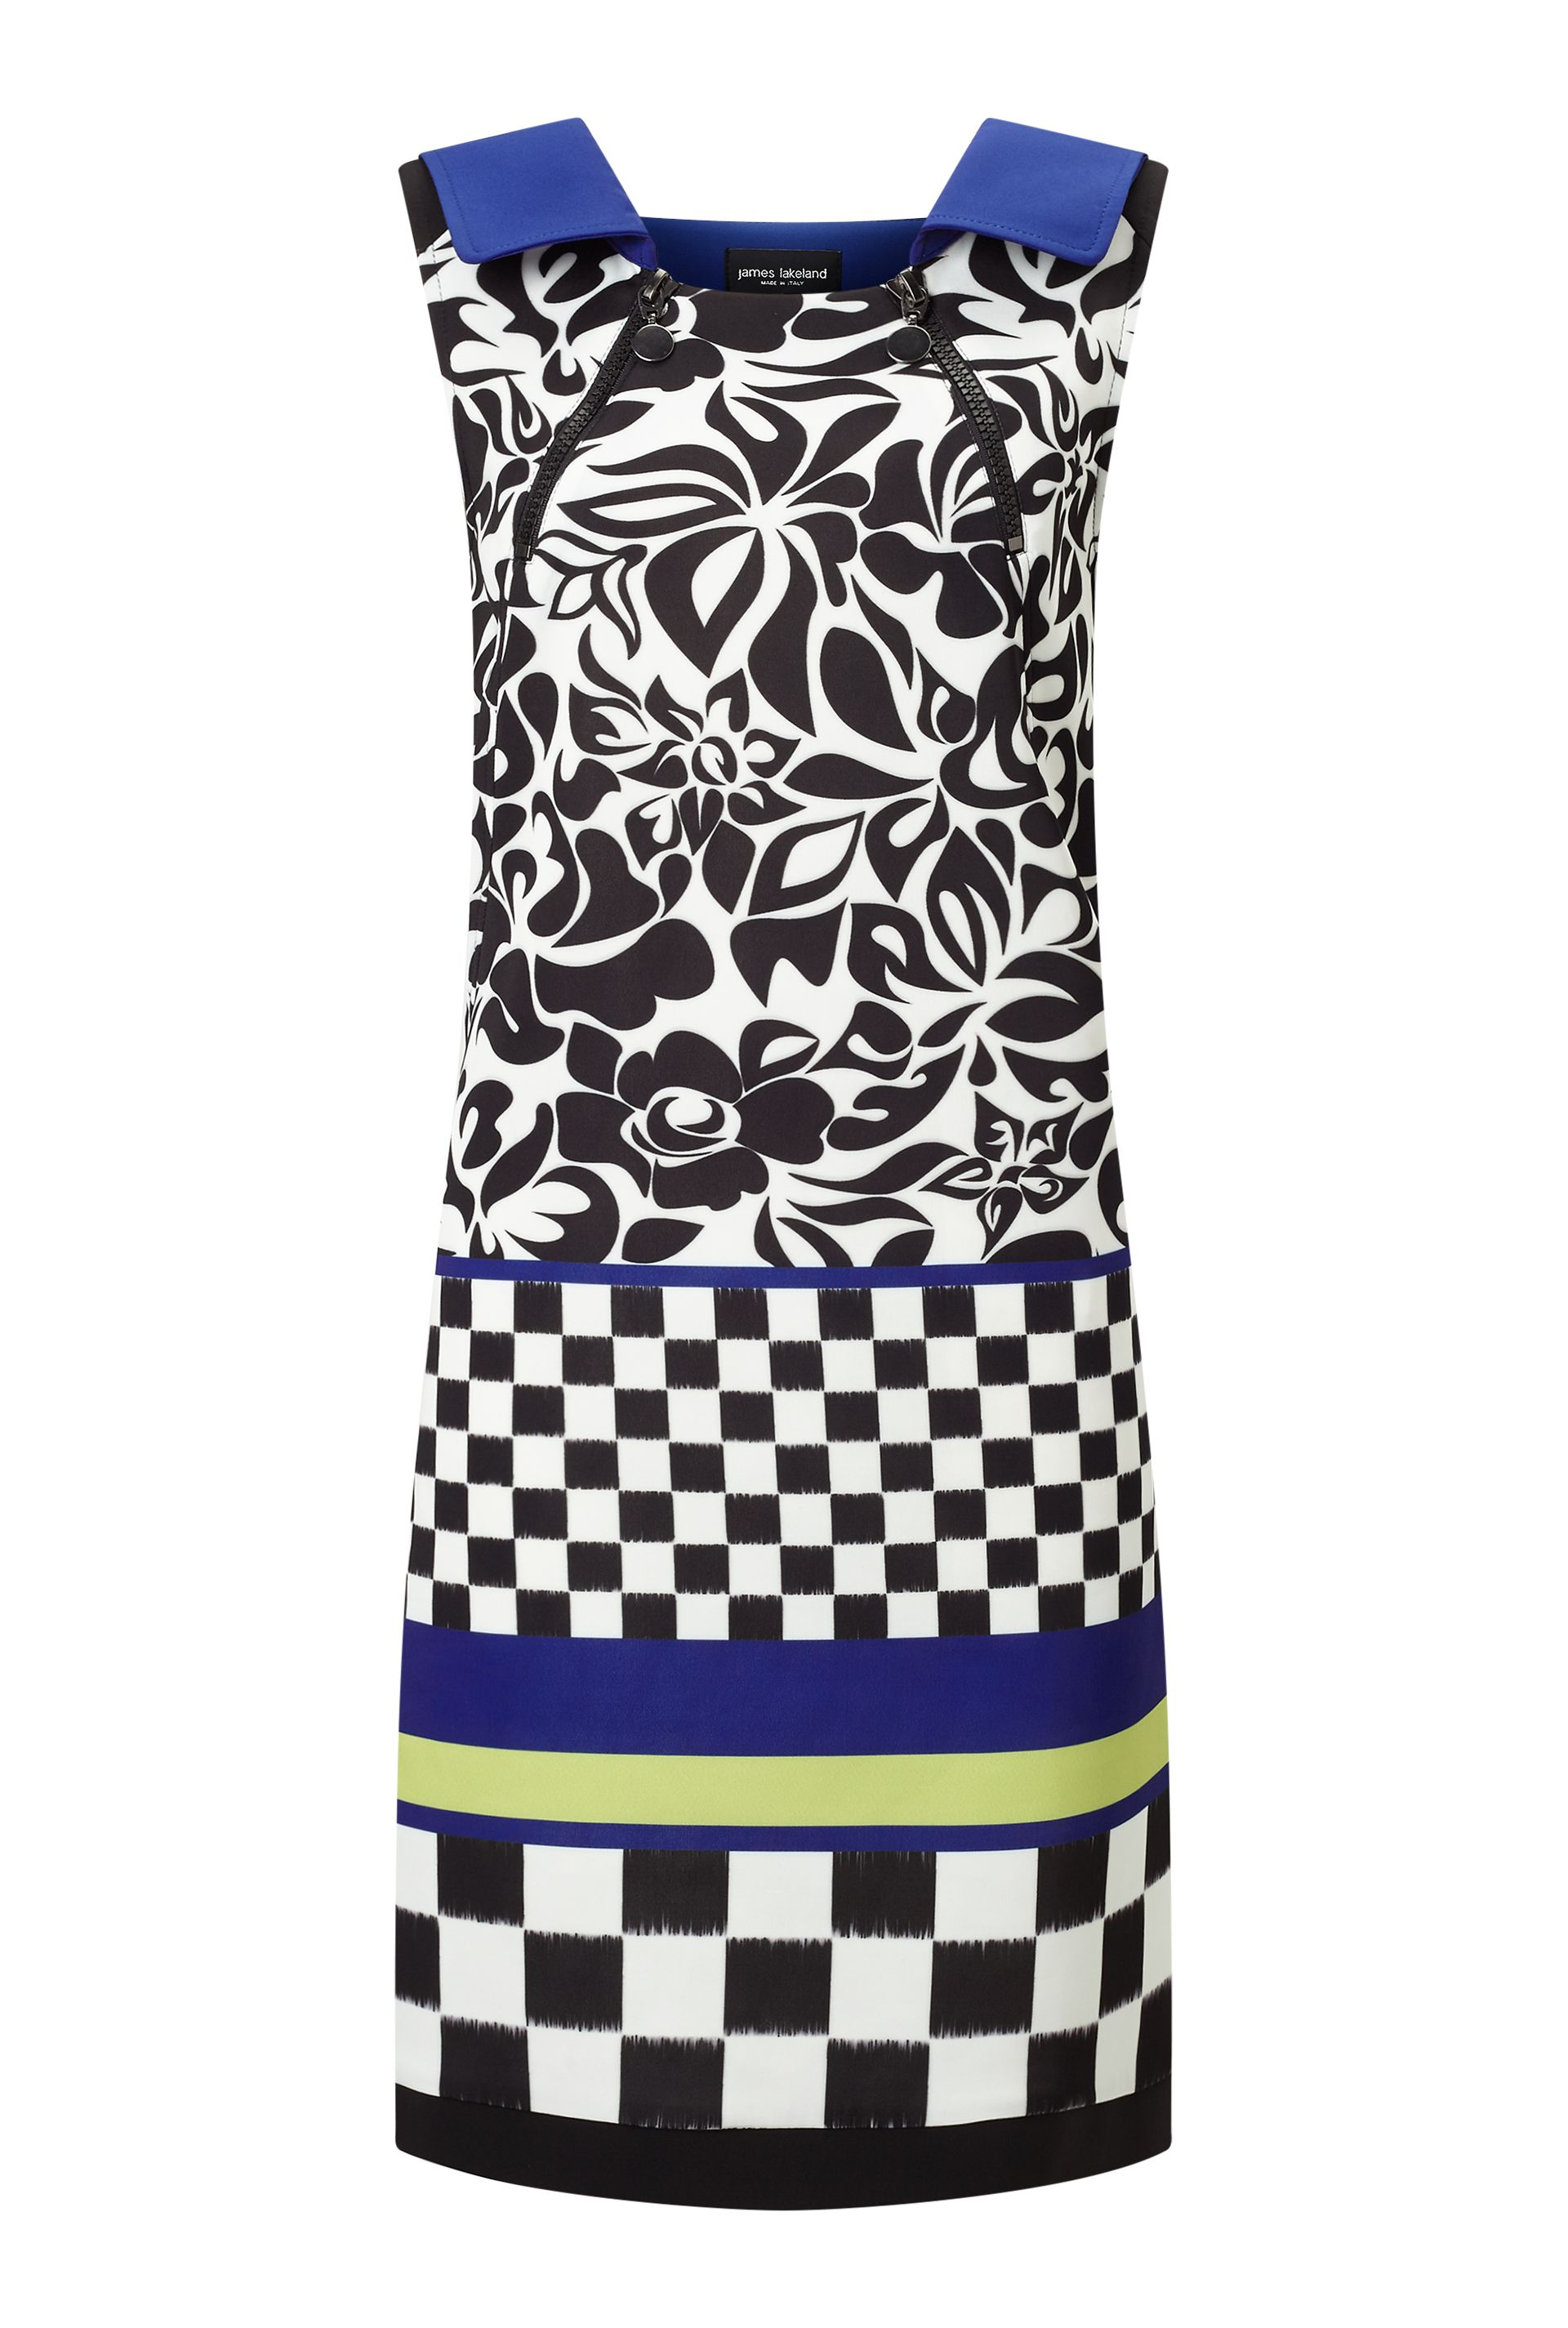 James Lakeland Neck Zip Print Dress, Blue